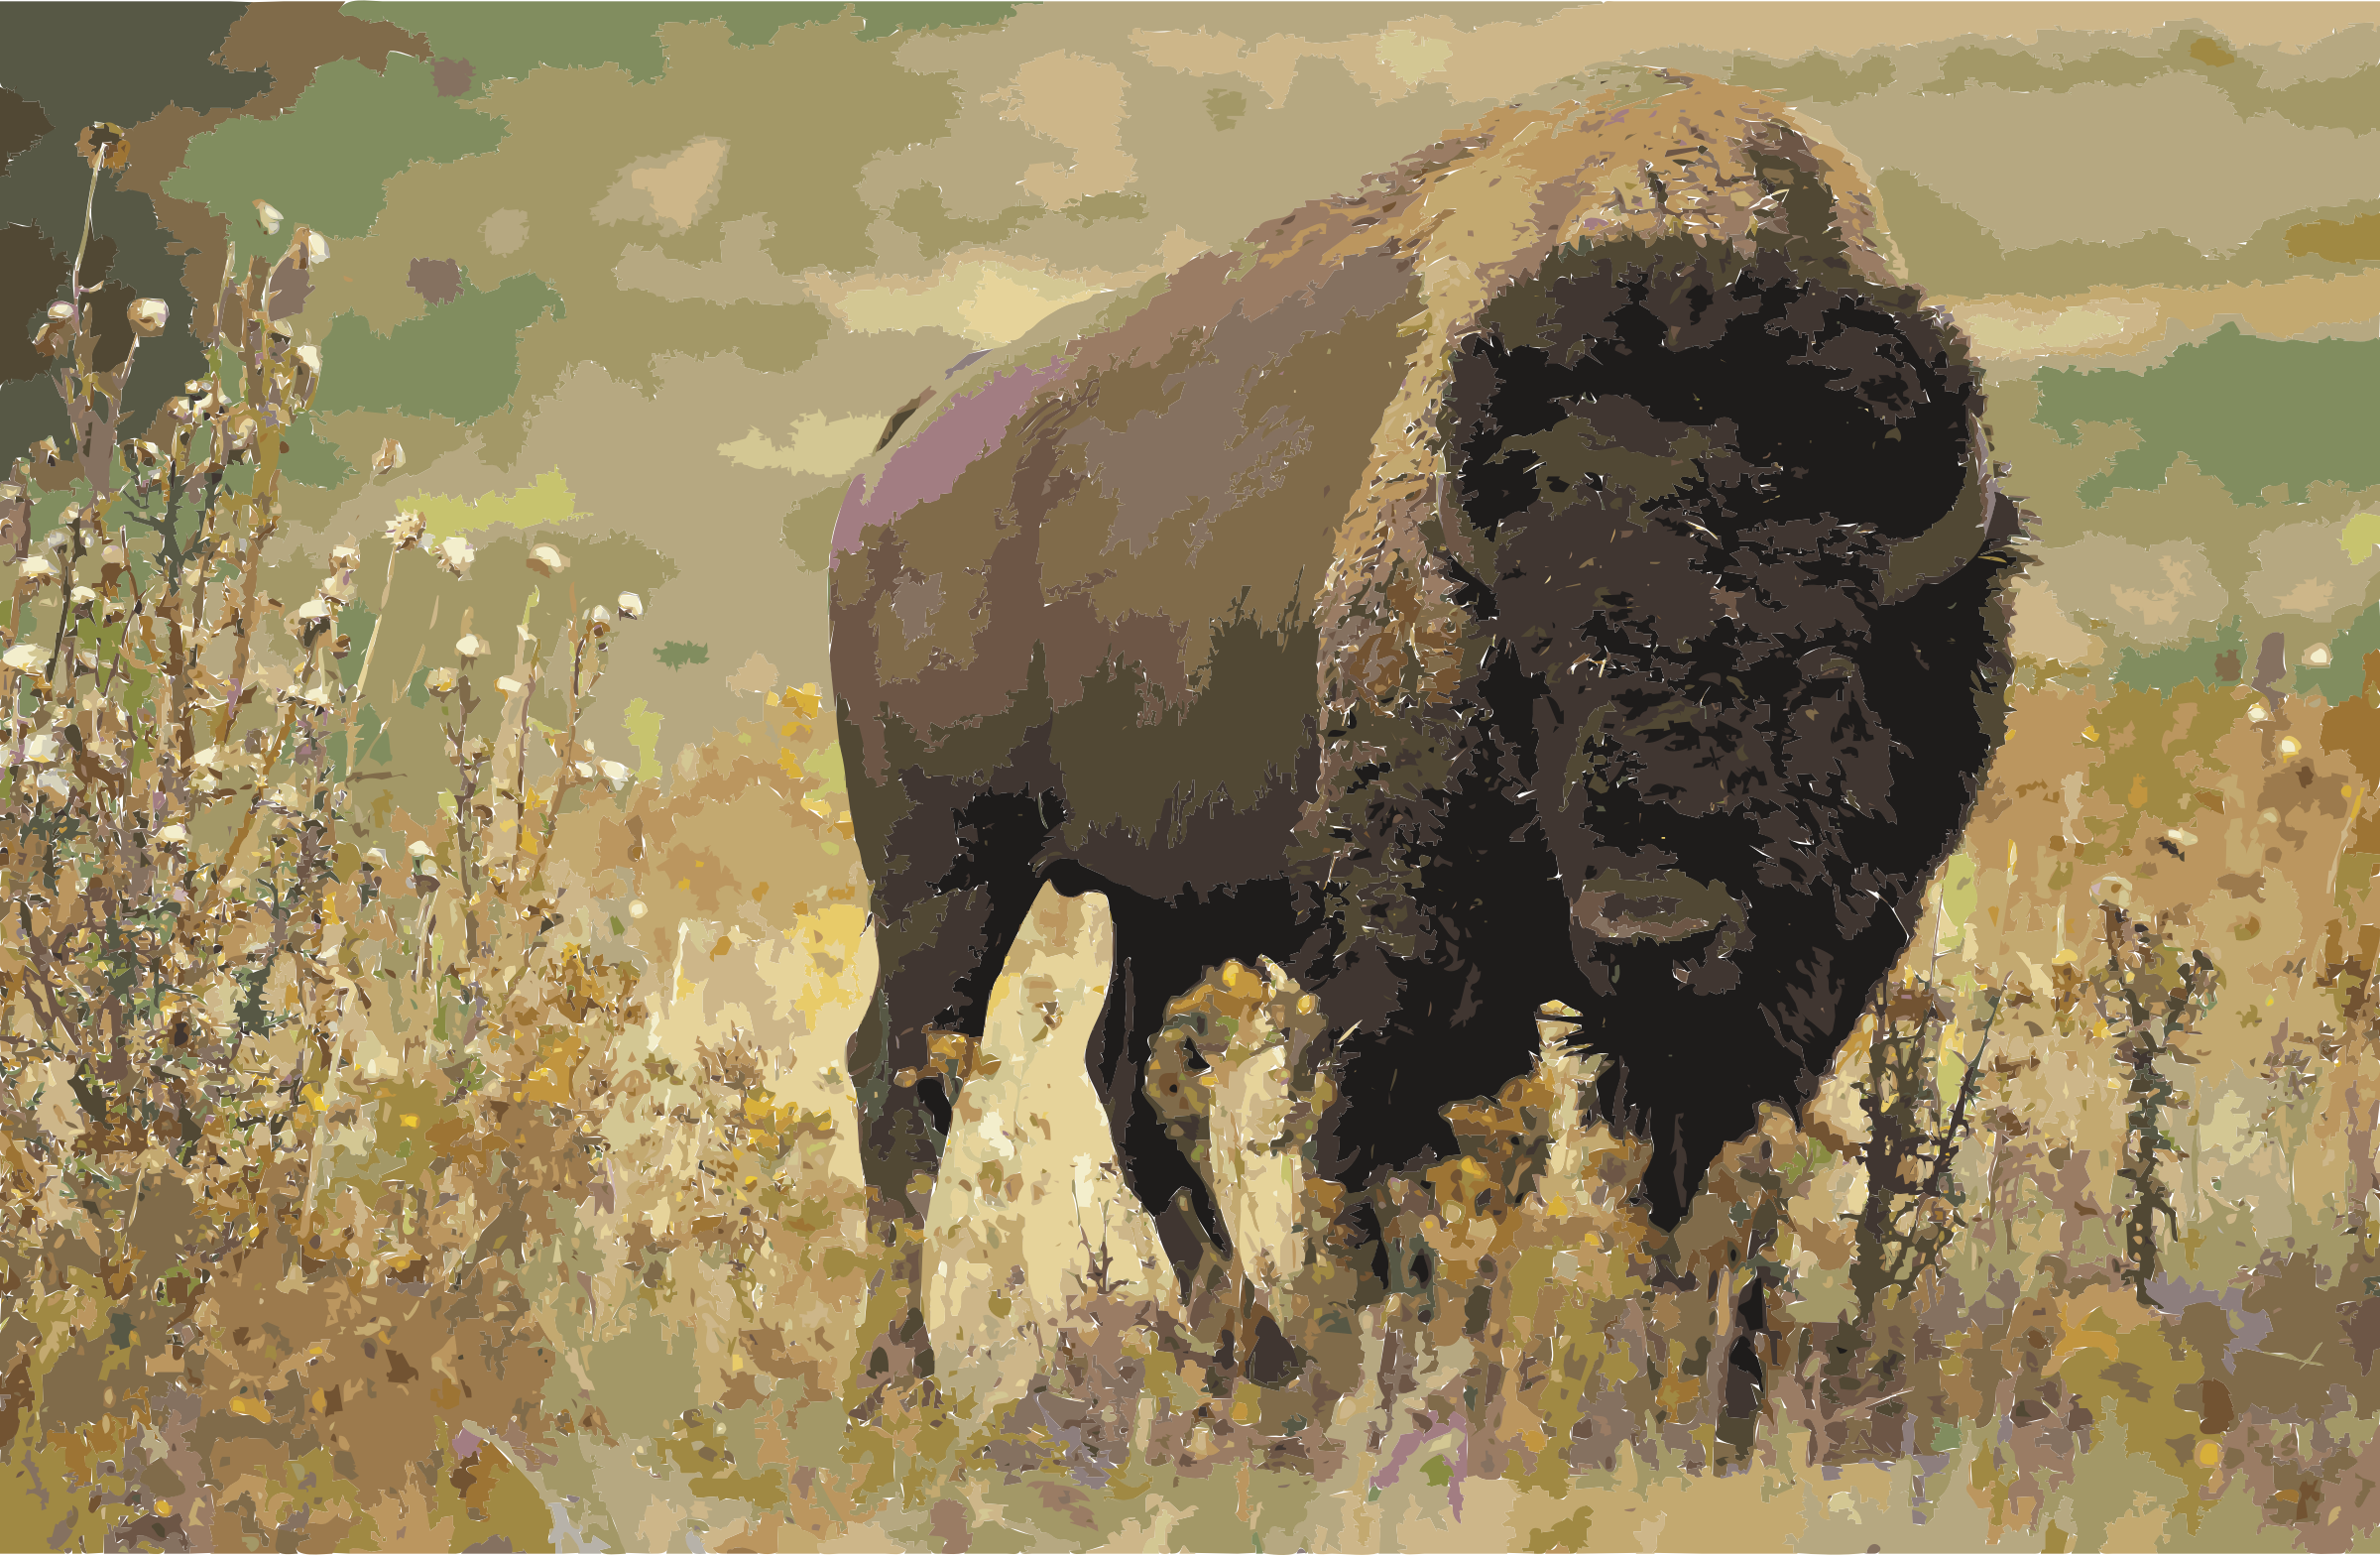 American bison k5680-1 by 3w8x8j+ekad9if2mkux4